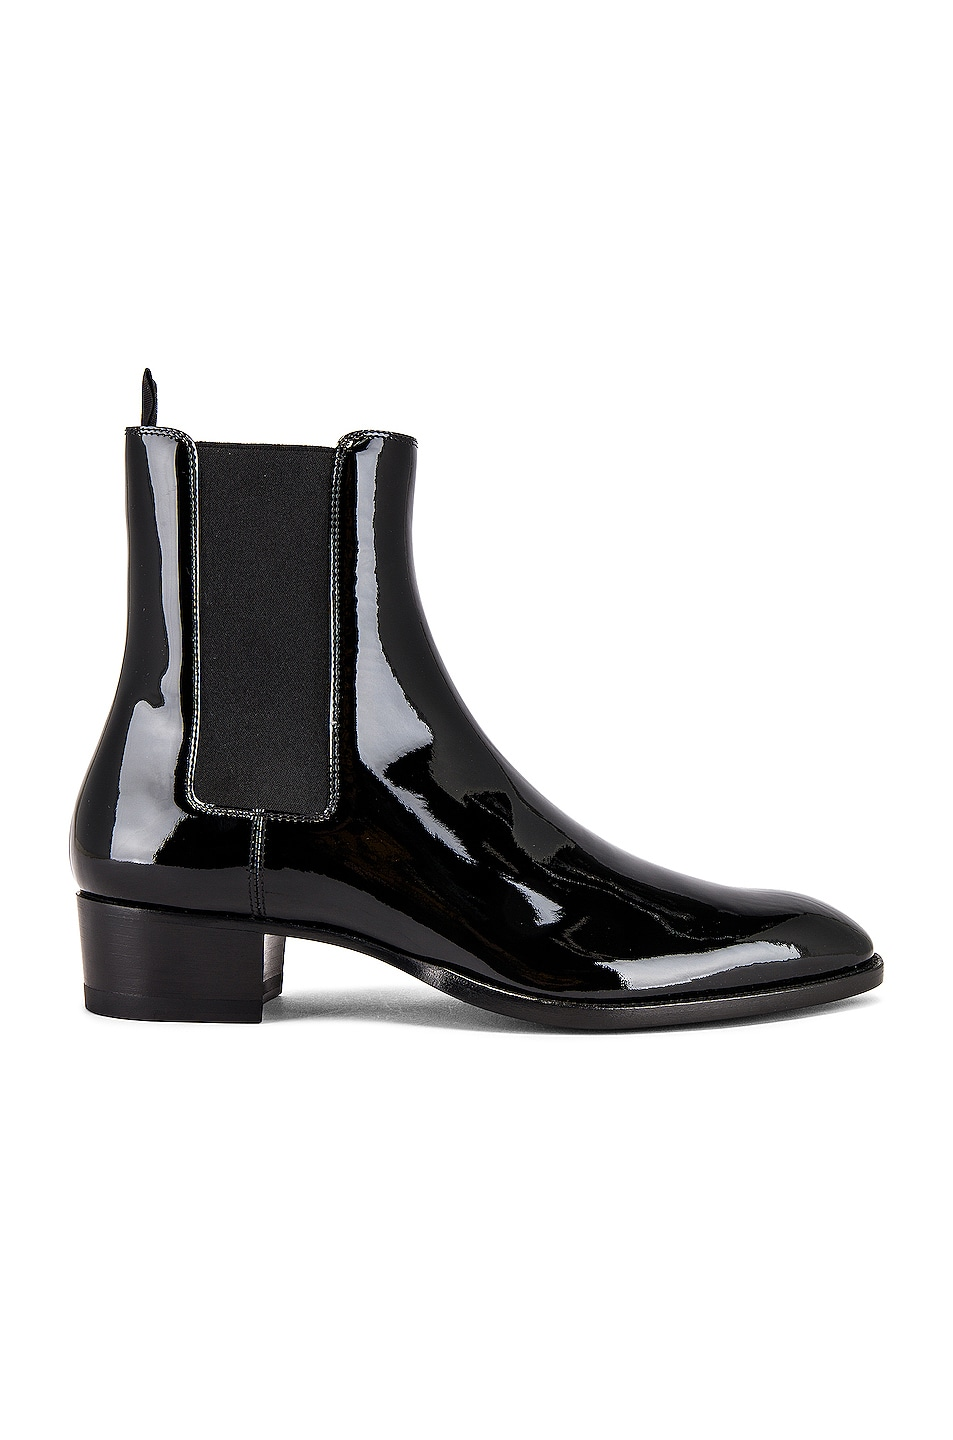 Image 2 of Saint Laurent Leather Boots in Black